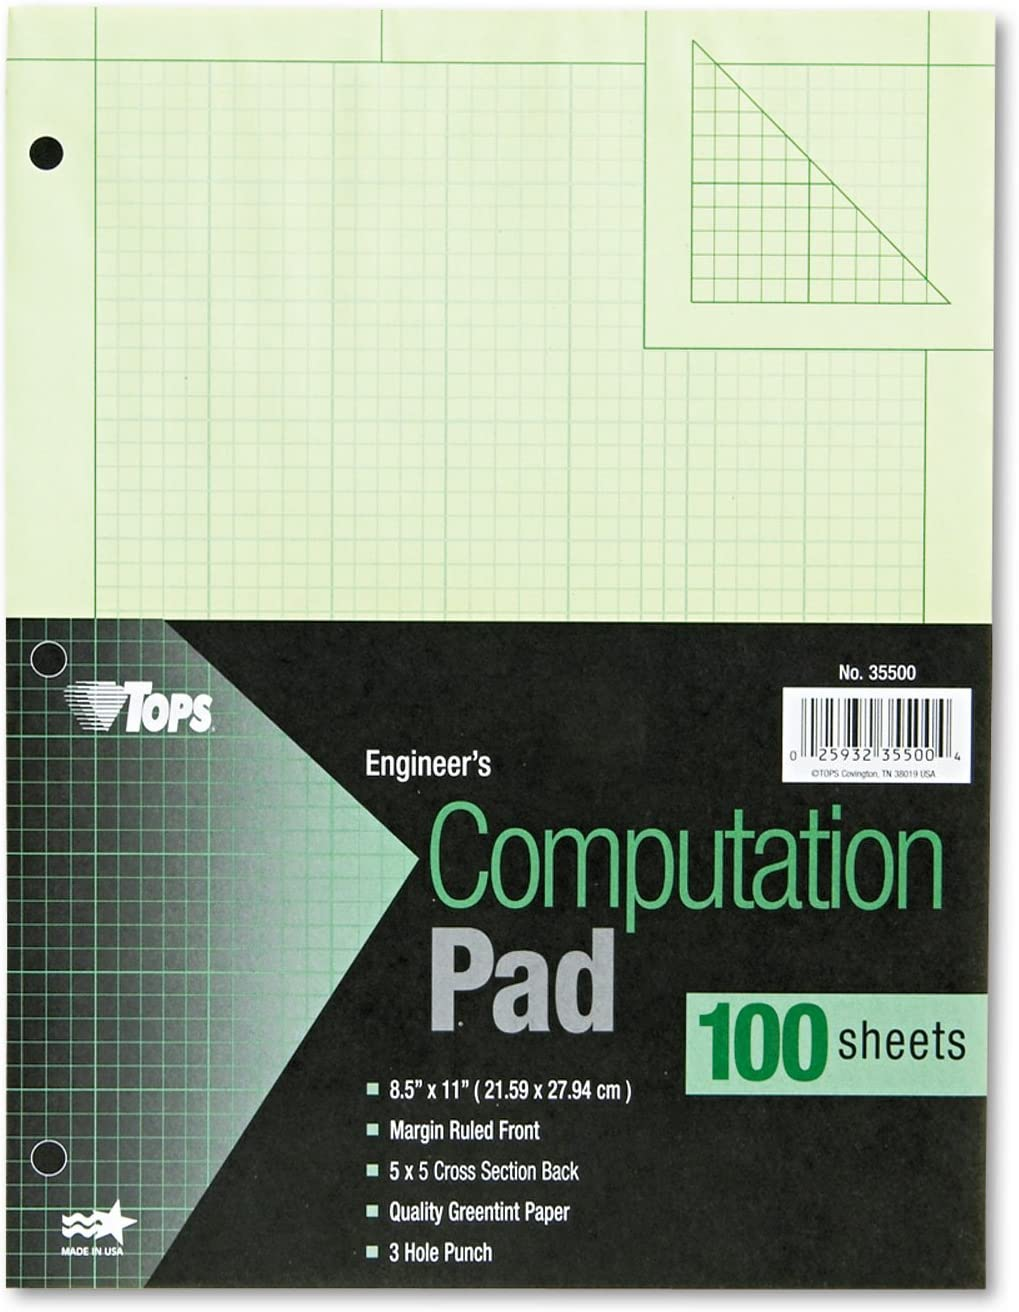 Max 41% OFF TOP35500 - Engineering Computation famous Pad